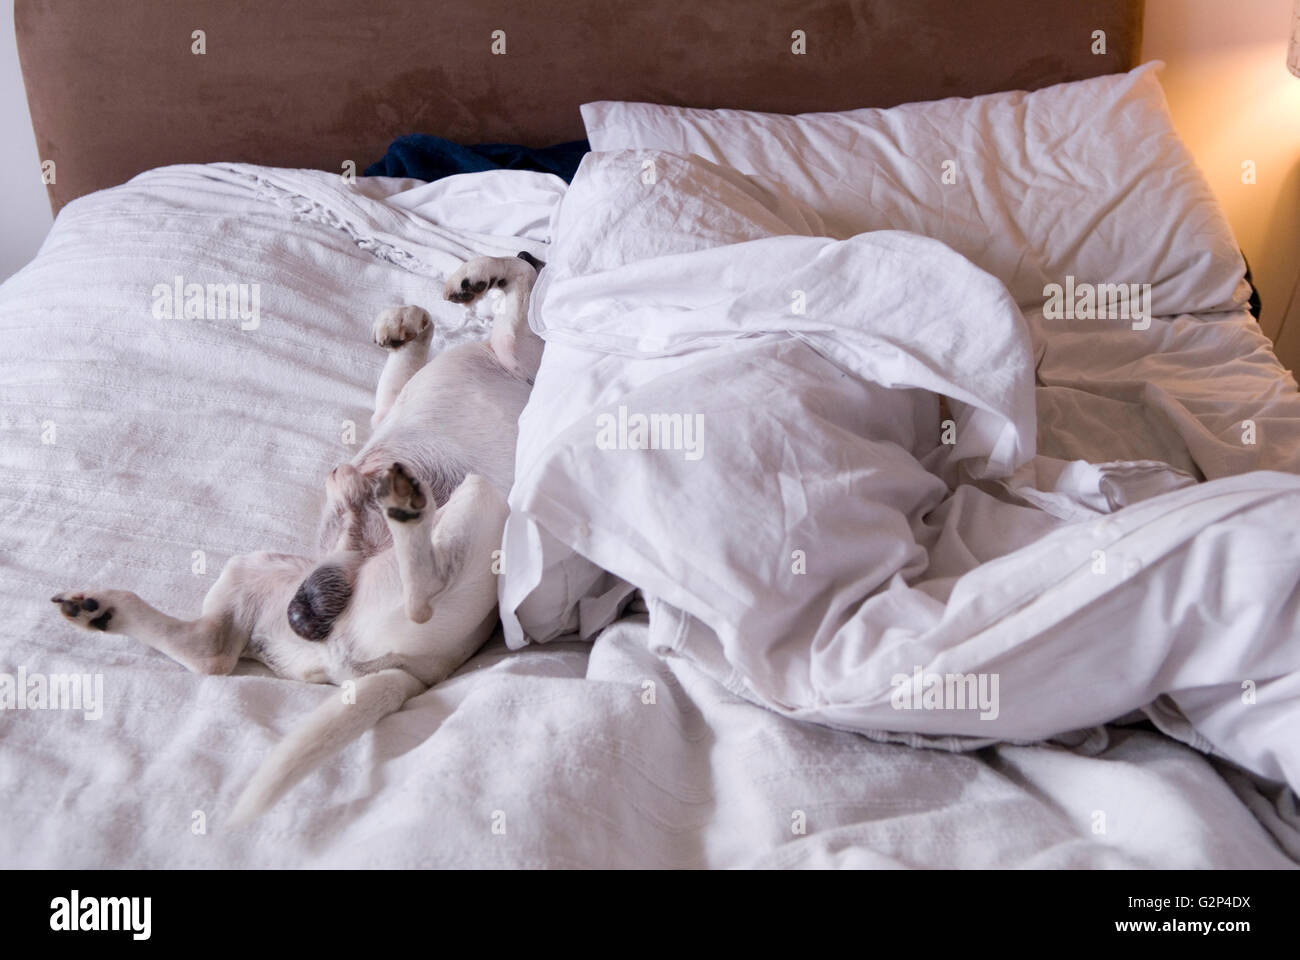 Dog asleep on bed. - Stock Image